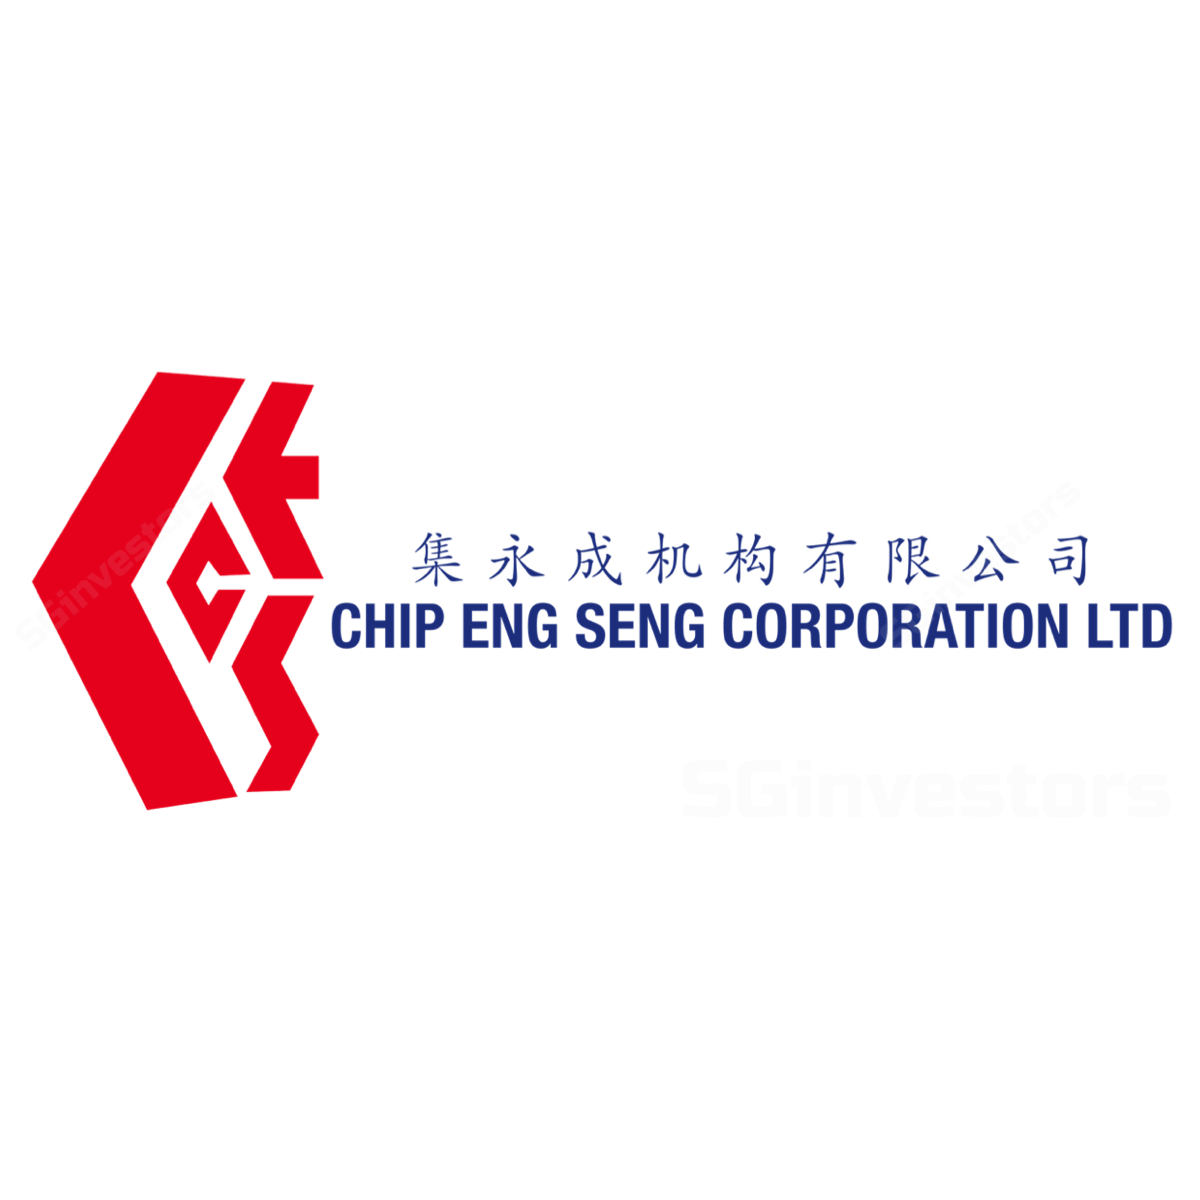 Chip Eng Seng - DBS Vickers 2018-07-06: Ambitions On Hold?